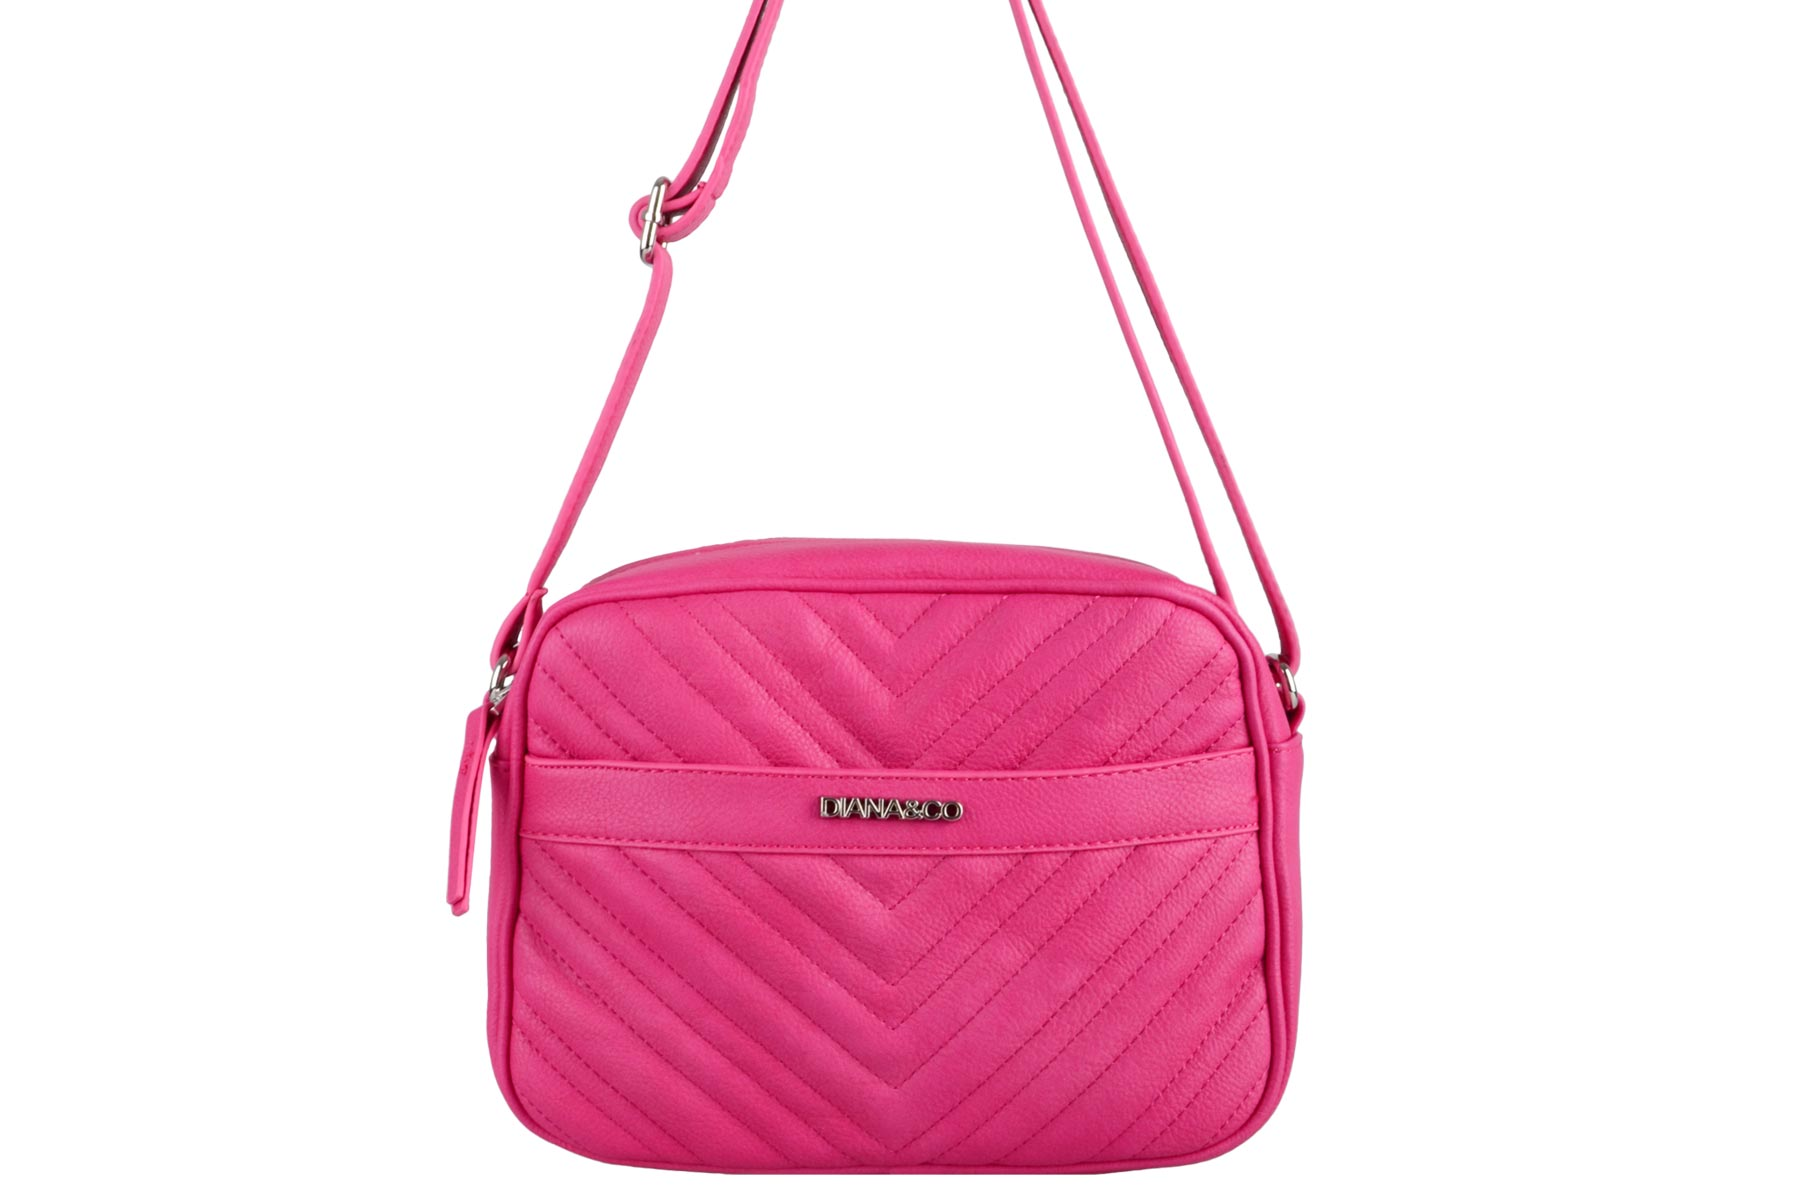 Ingrosso Borsa Crossbody – Acquista Borsa Crossbody